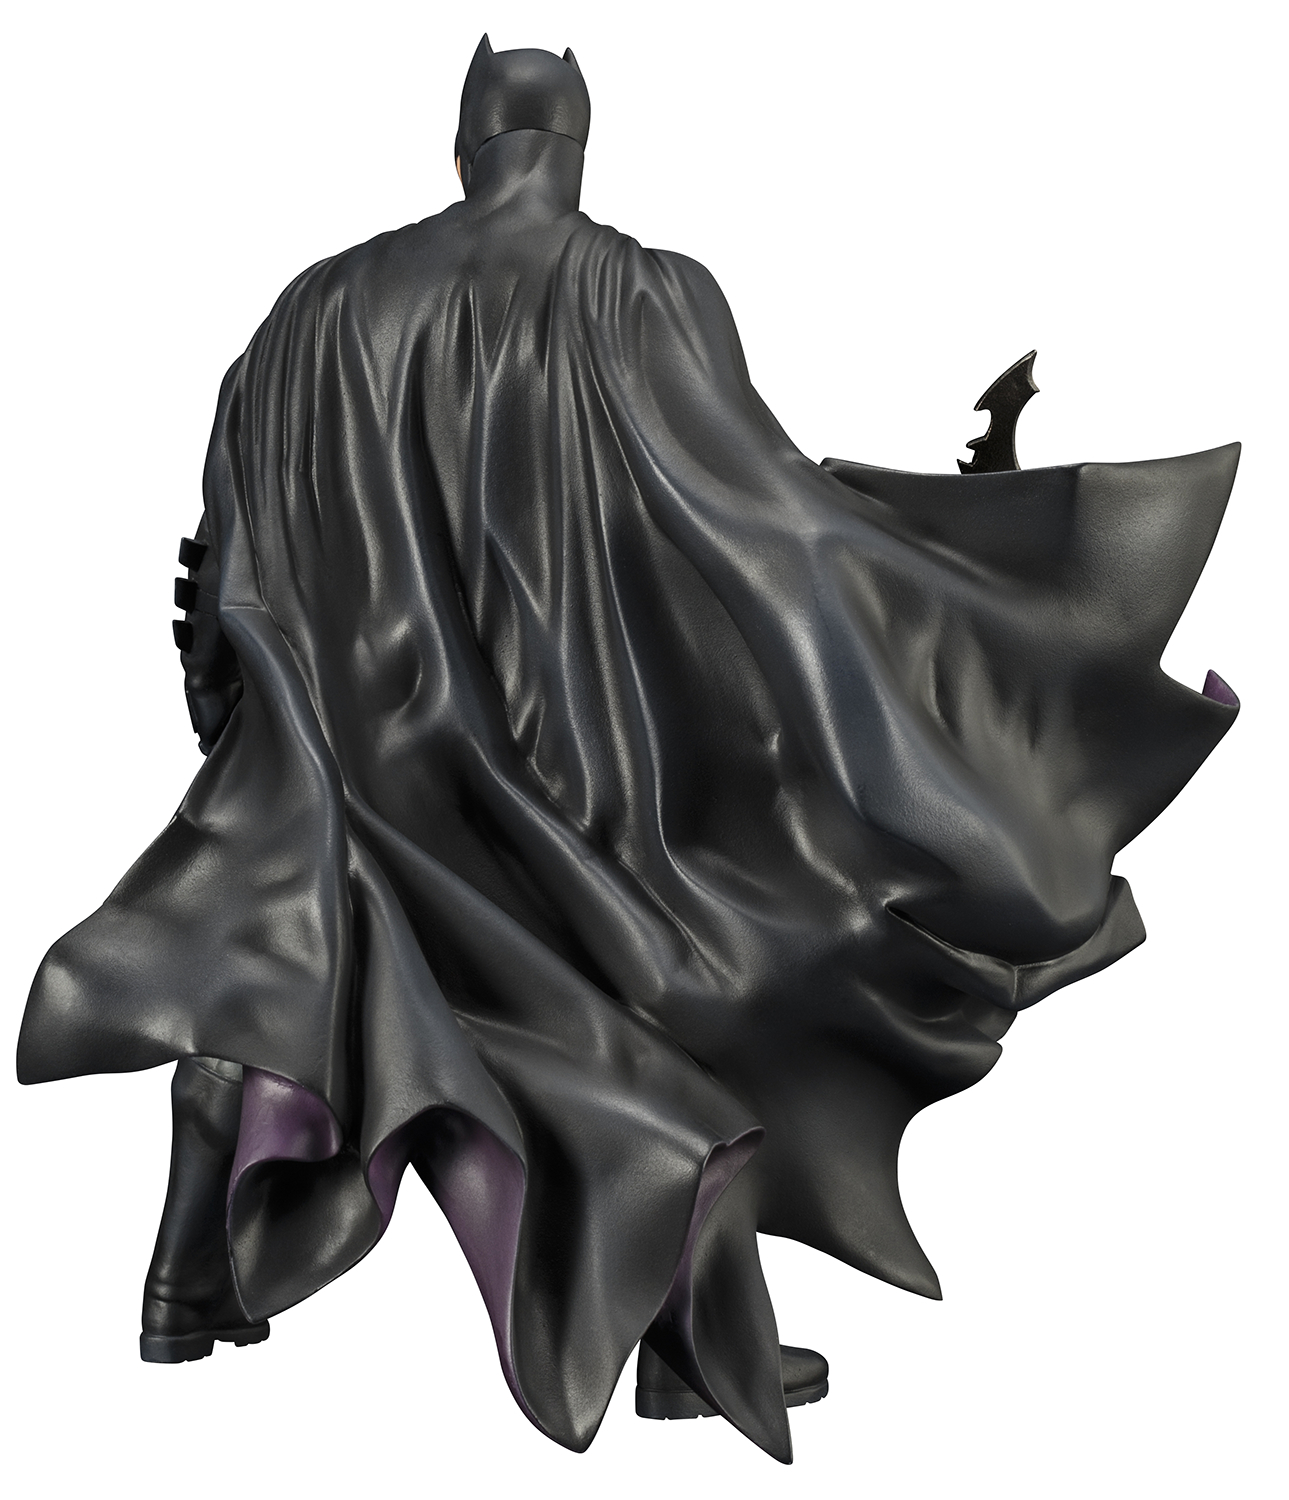 DC COMICS REBIRTH BATMAN ARTFX+ STATUE